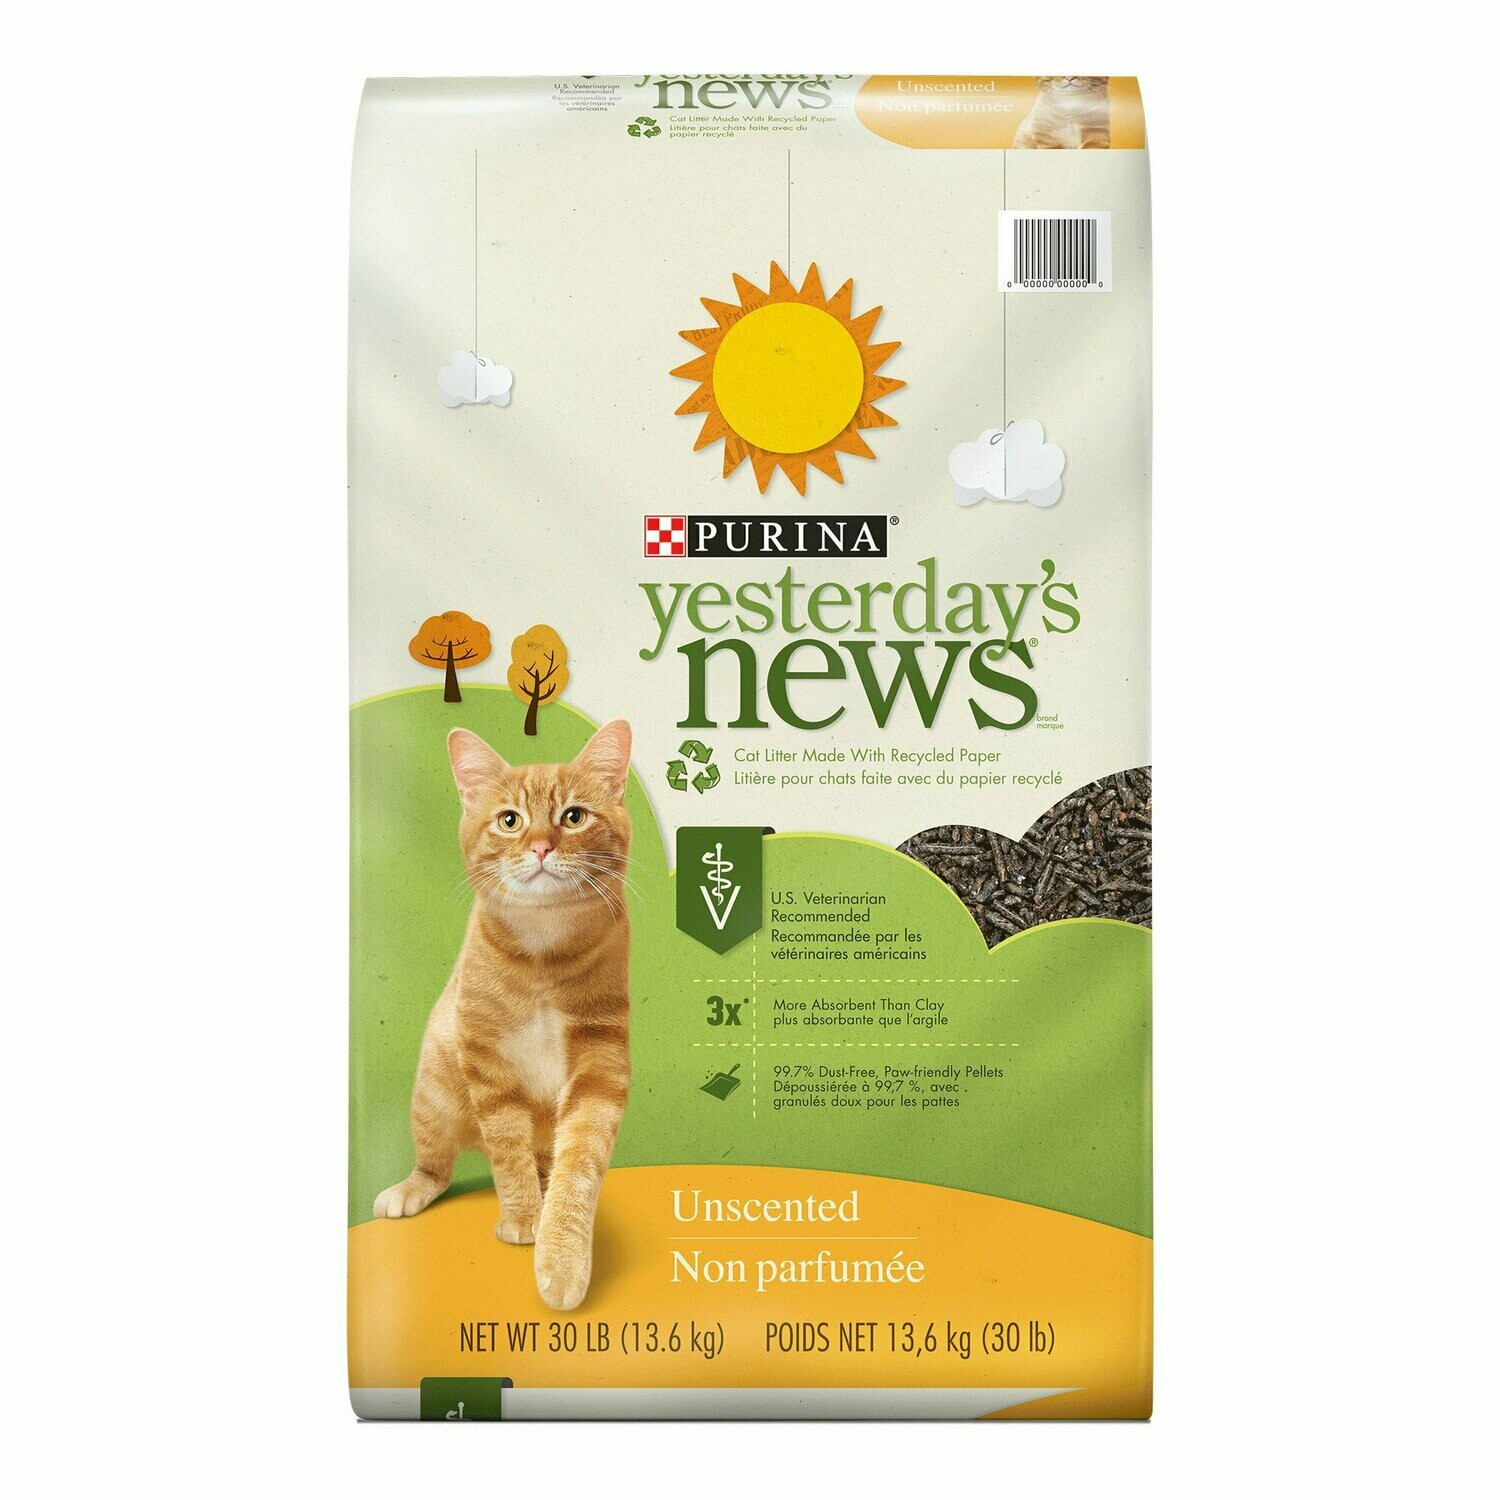 Purina cat litter open bags quantity 31 pounds**OPEN/TORN BAG**